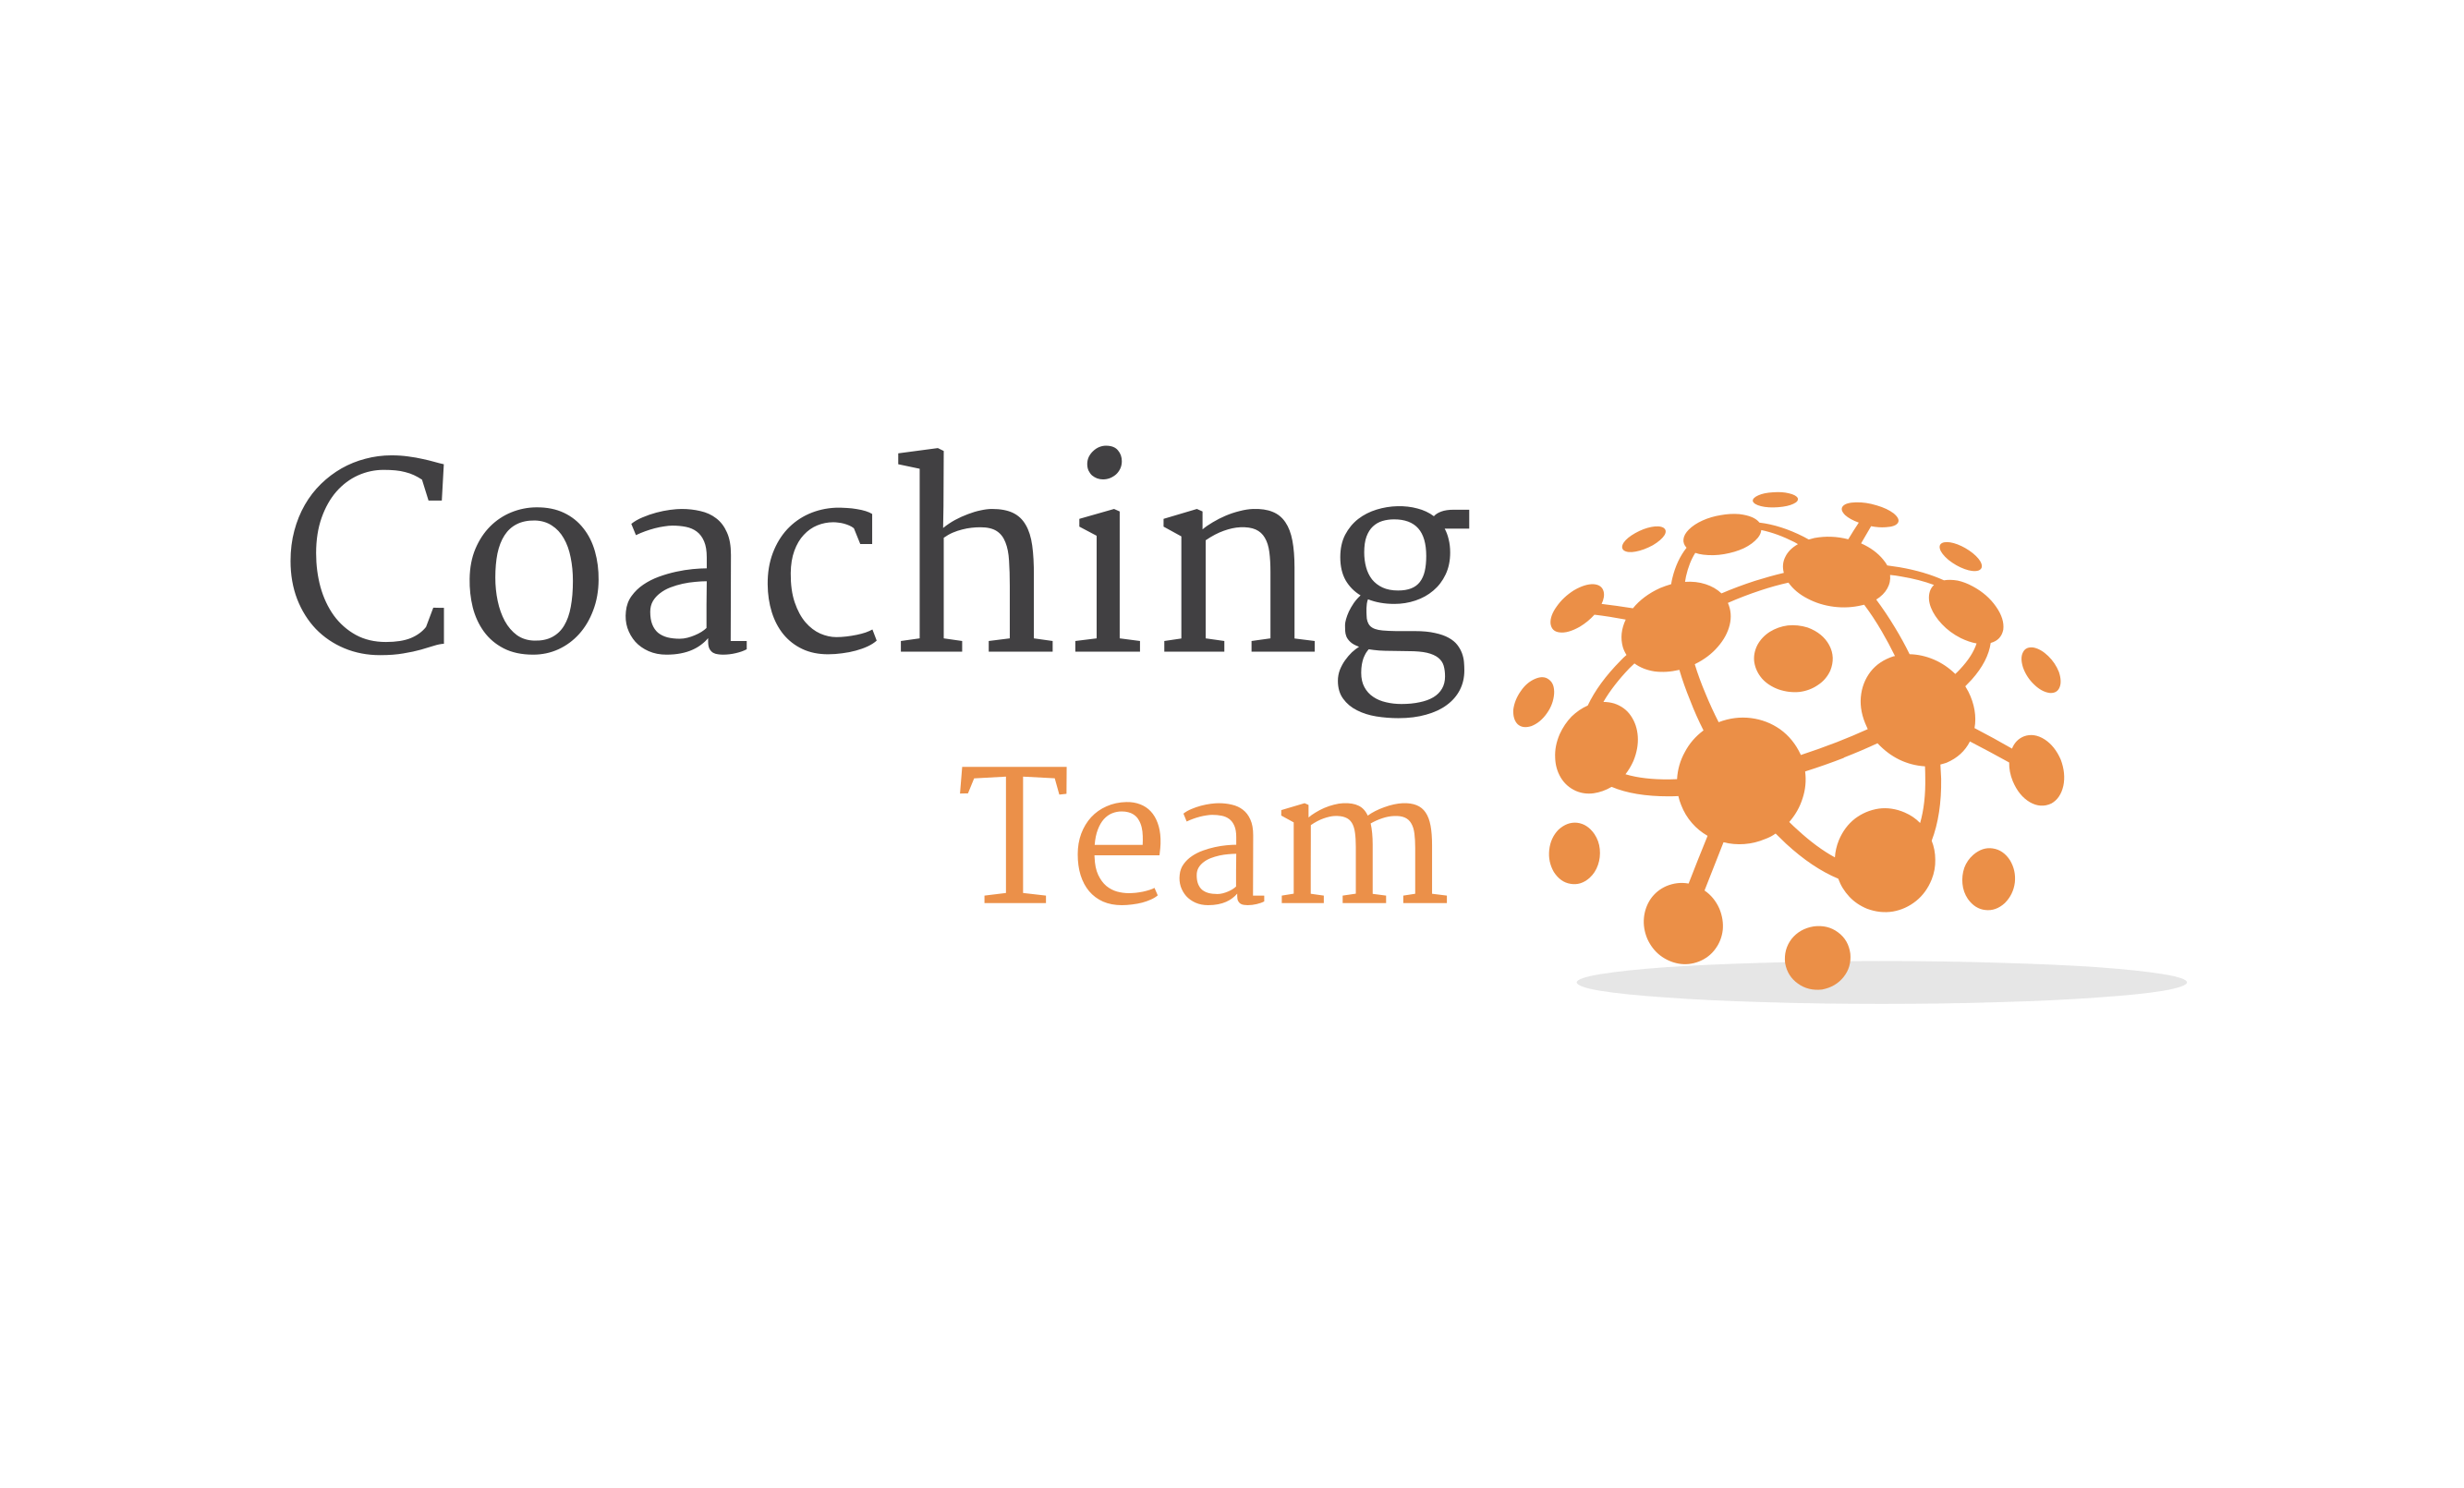 coaching team barcelona logo